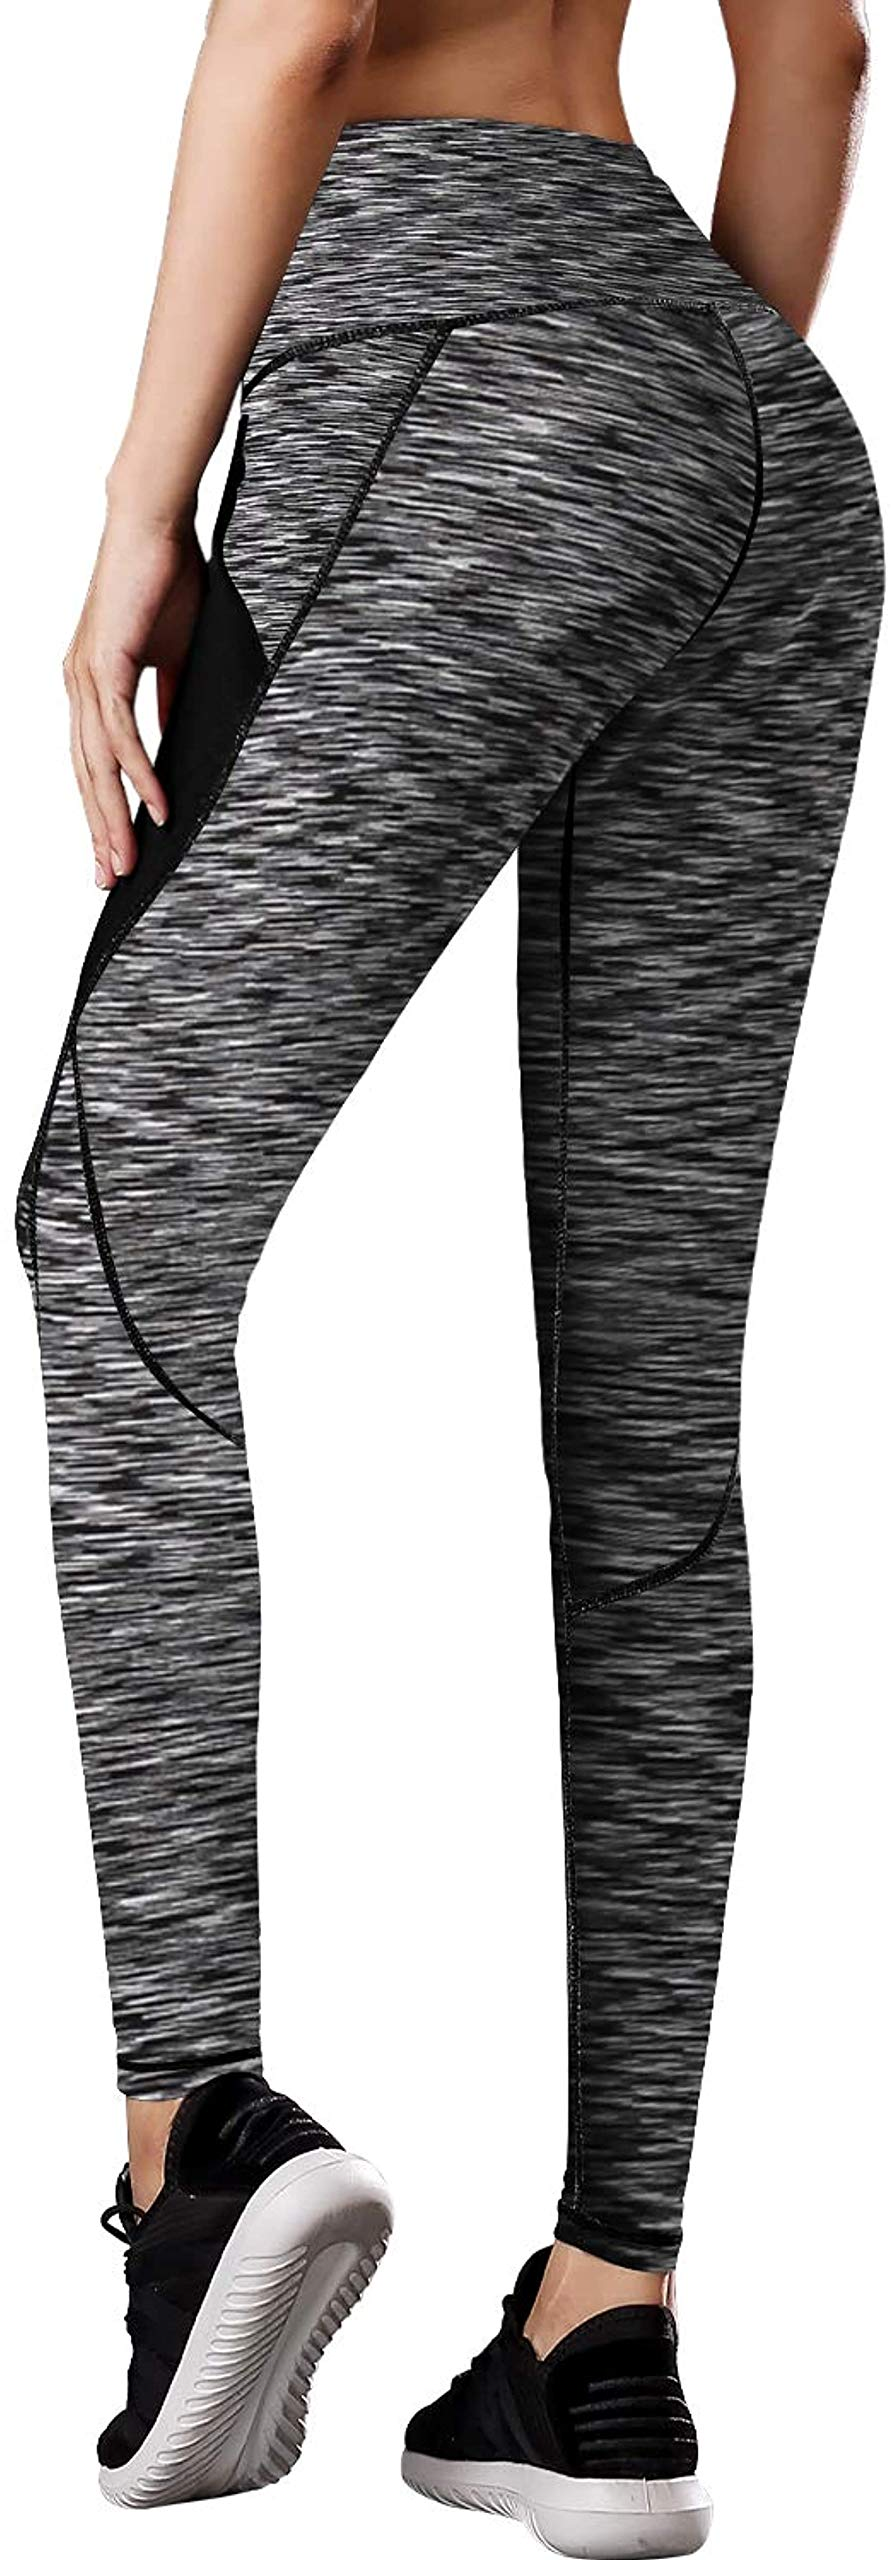 Queerier High Waisted Workout Leggings, Women's Yoga Pants with Pockets Tummy Control Compression Sport Running Tights